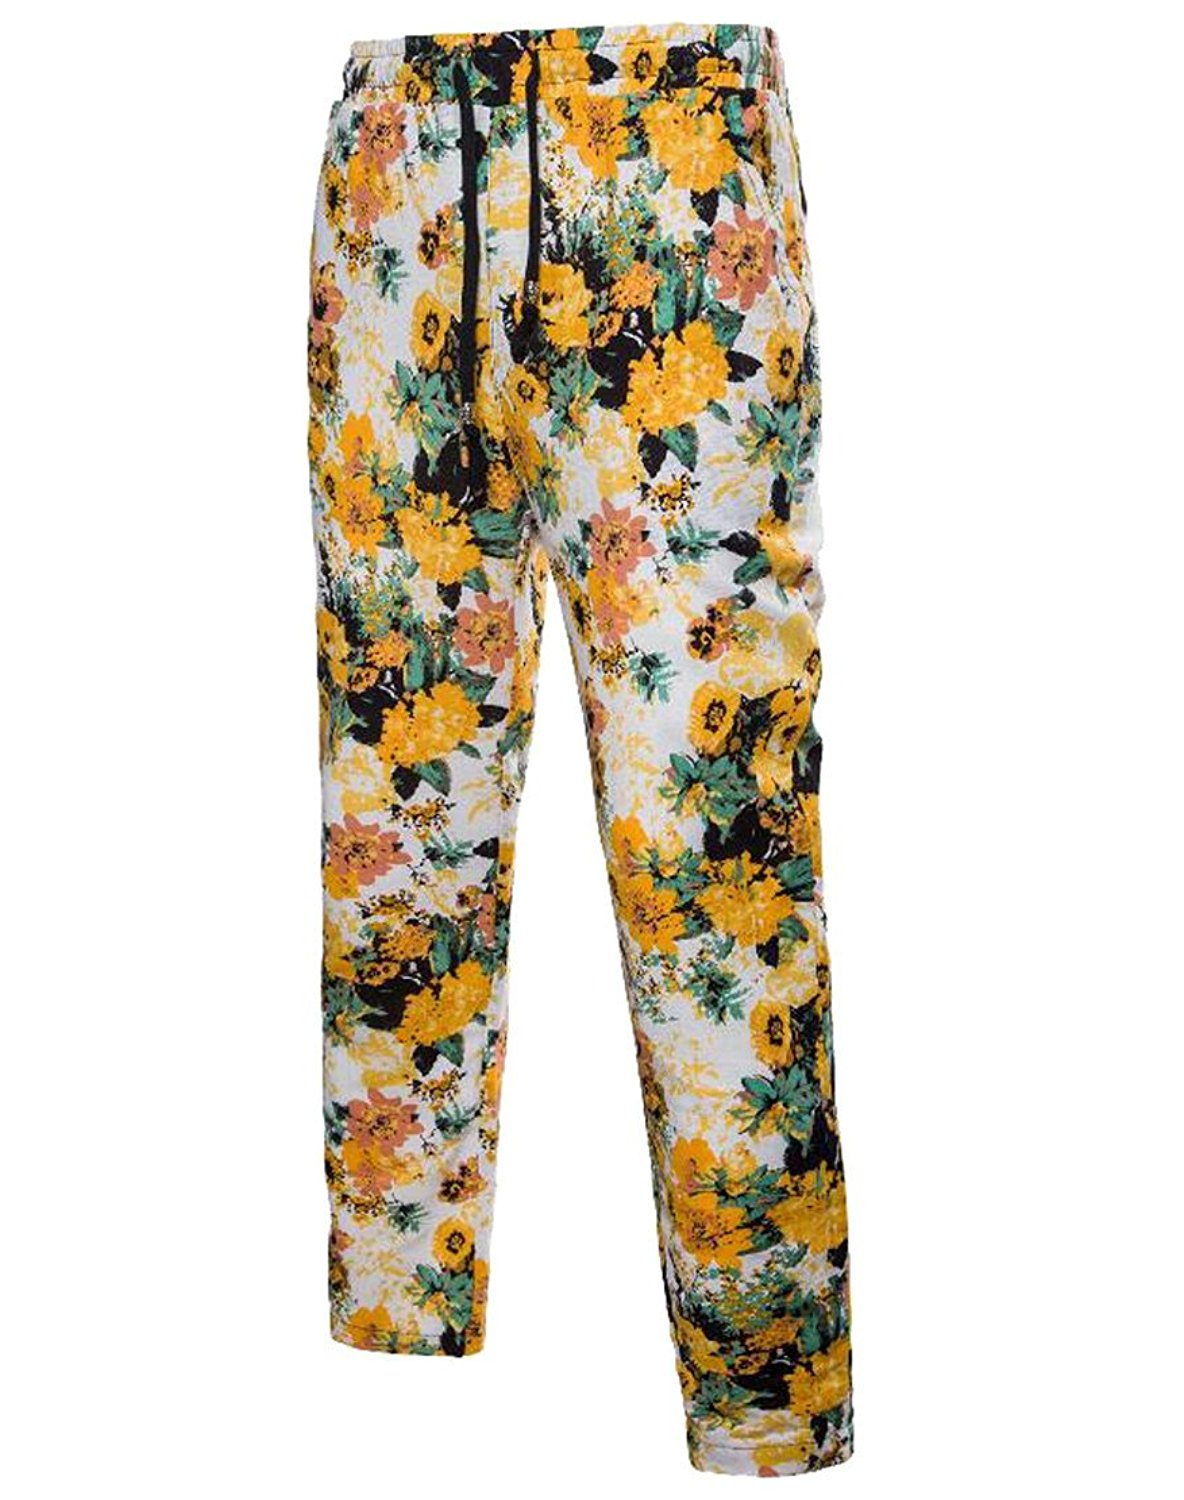 e95126c7c3 Get Quotations · SYTX Mens Stylish Floral Printed Mid Waist Straight Leg  Haren Pants Trousers